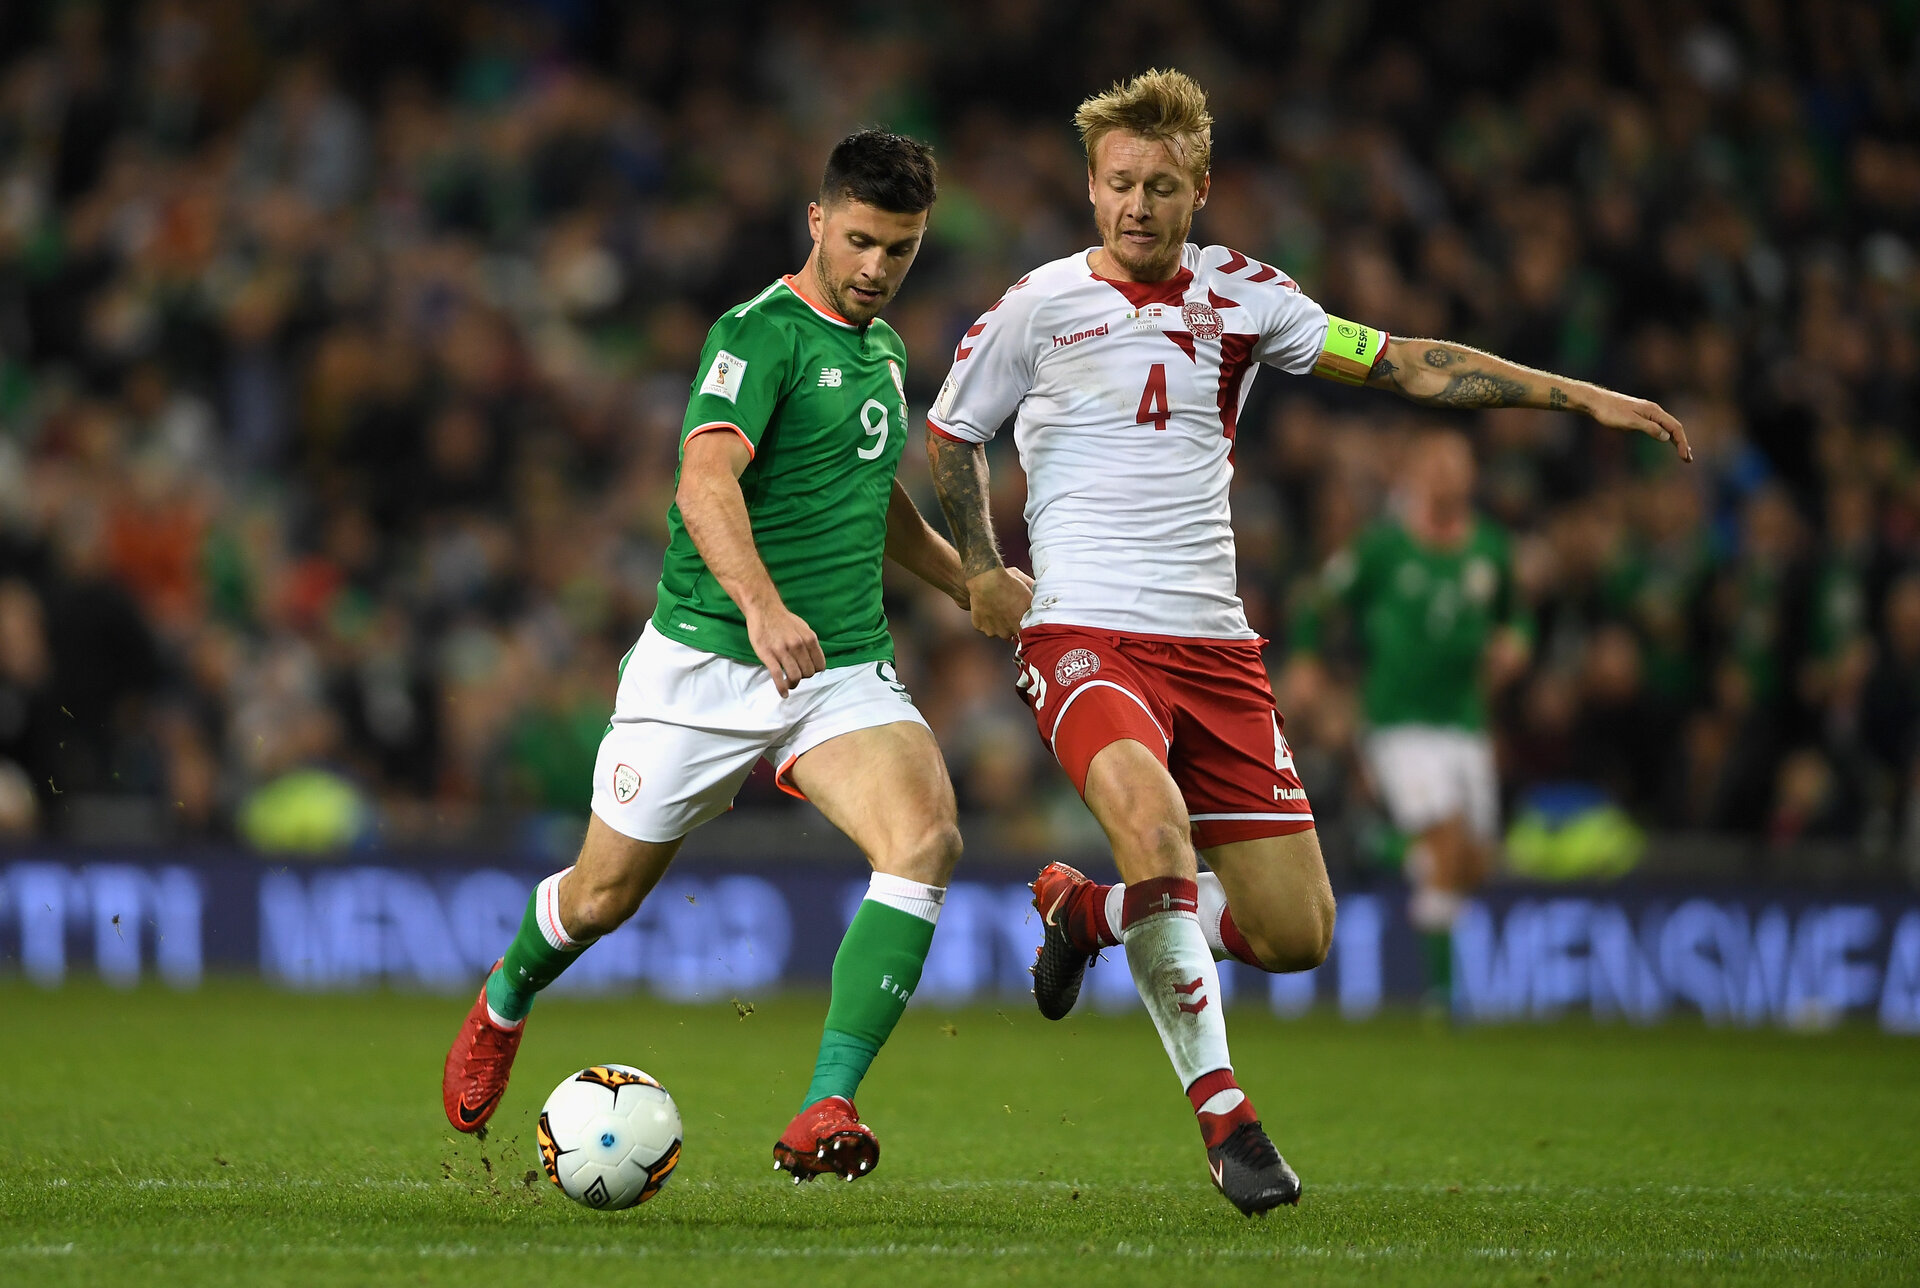 DUBLIN, IRELAND - NOVEMBER 14: Shane Long of the Republic of Ireland and Simon Kjaer of Denmark battle for possession during the FIFA 2018 World Cup Qualifier Play-Off: Second Leg between Republic of Ireland and Denmark at Aviva Stadium on November 14, 2017 in Dublin, Ireland.  (Photo by Mike Hewitt/Getty Images)